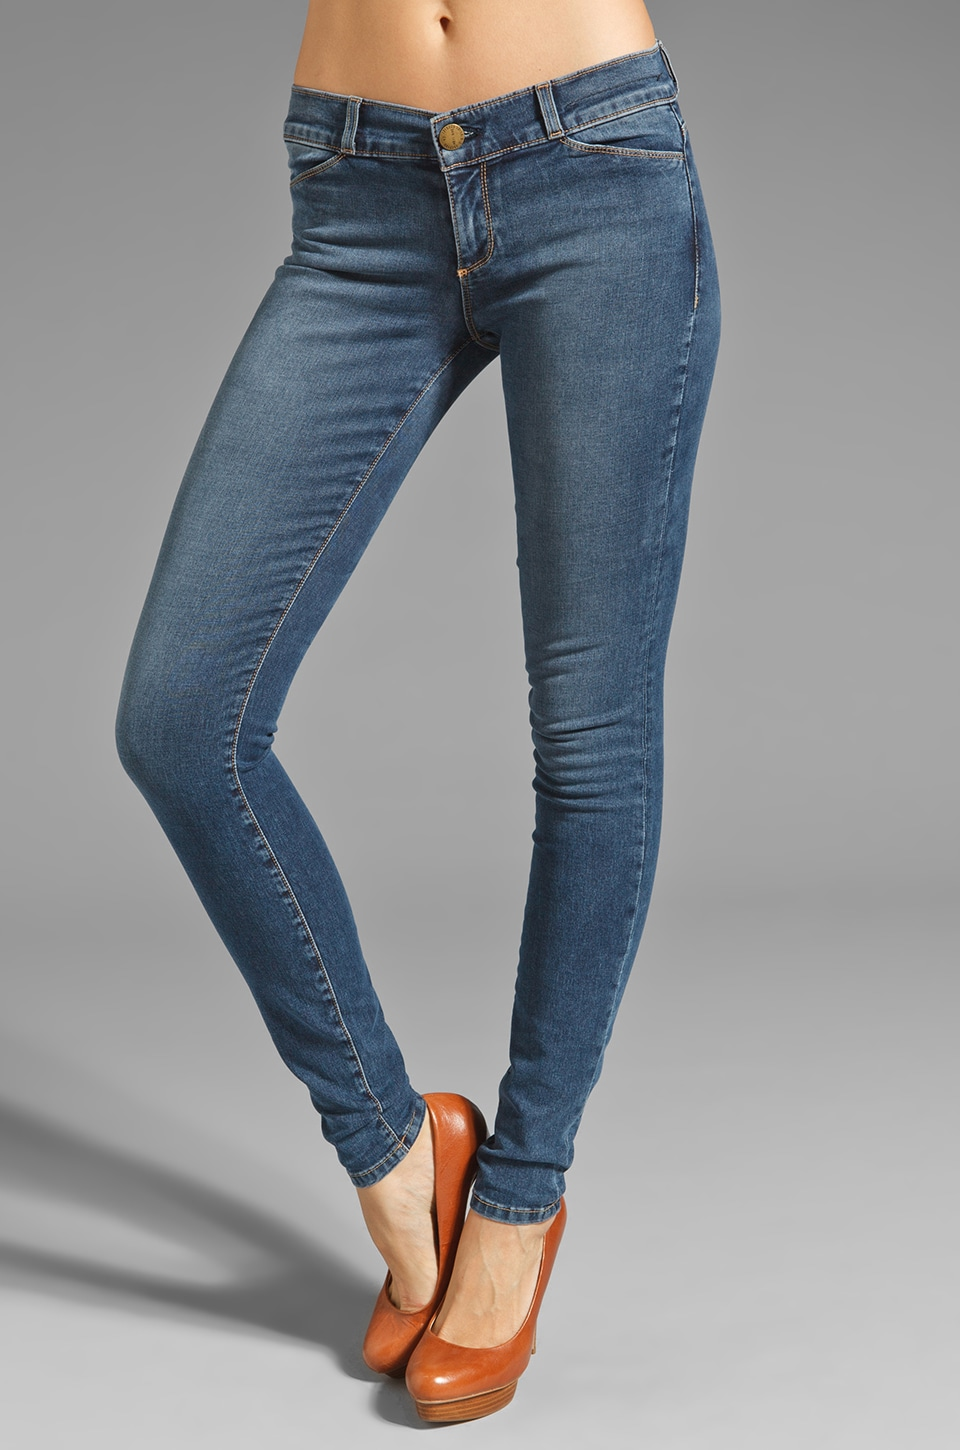 Current/Elliott The Jean Legging in Roulette